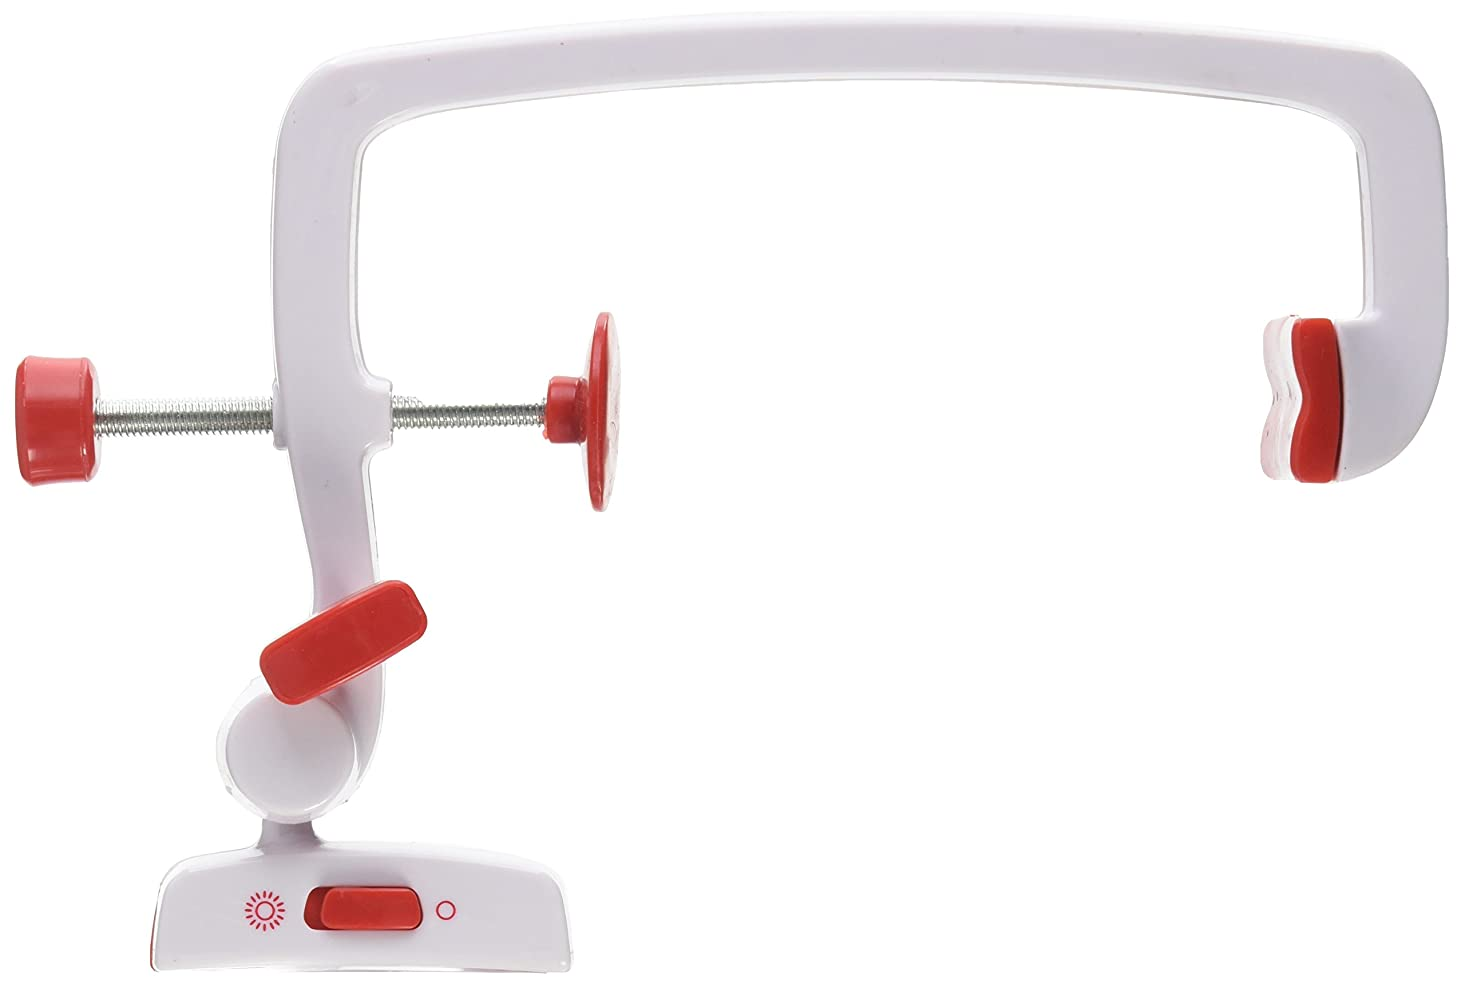 Wrights 55501020 Sewing Machine Magnifier, White and Red bgraq692538